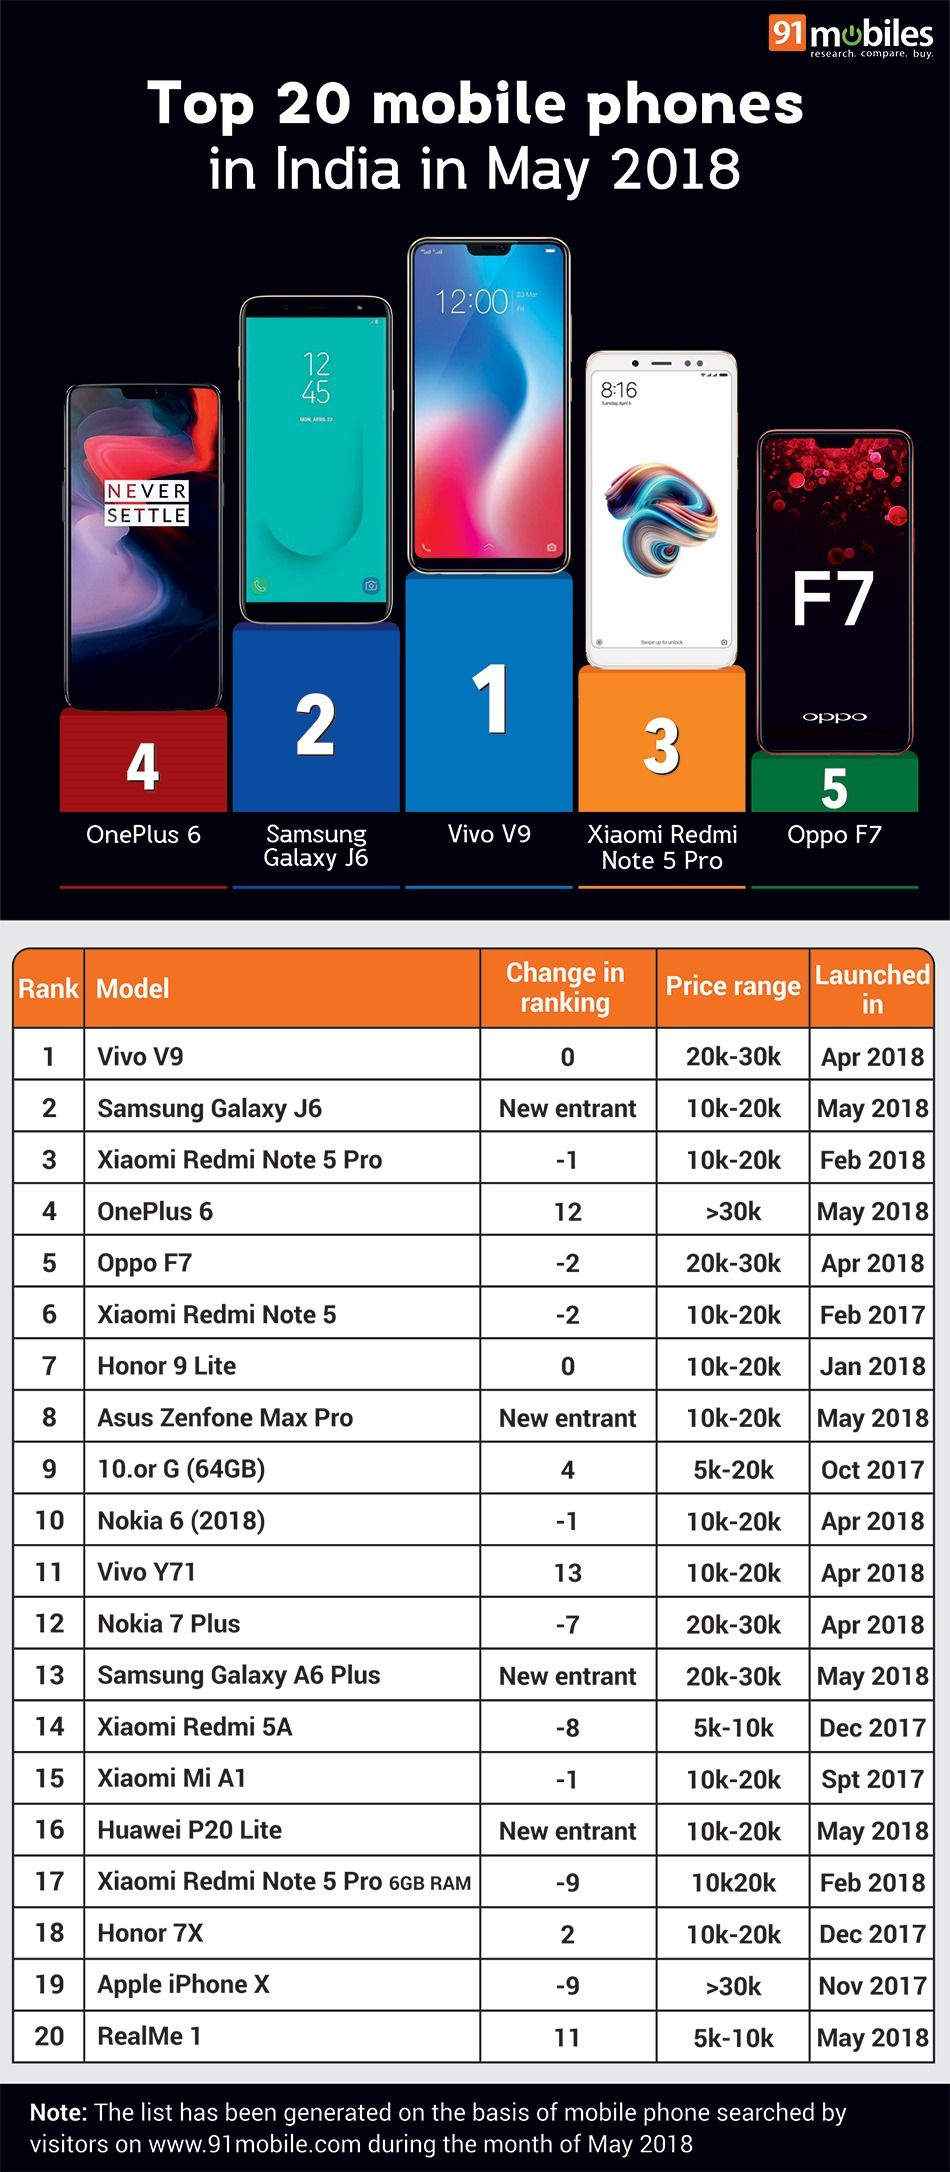 Top 20 mobile phones in India in May 2018